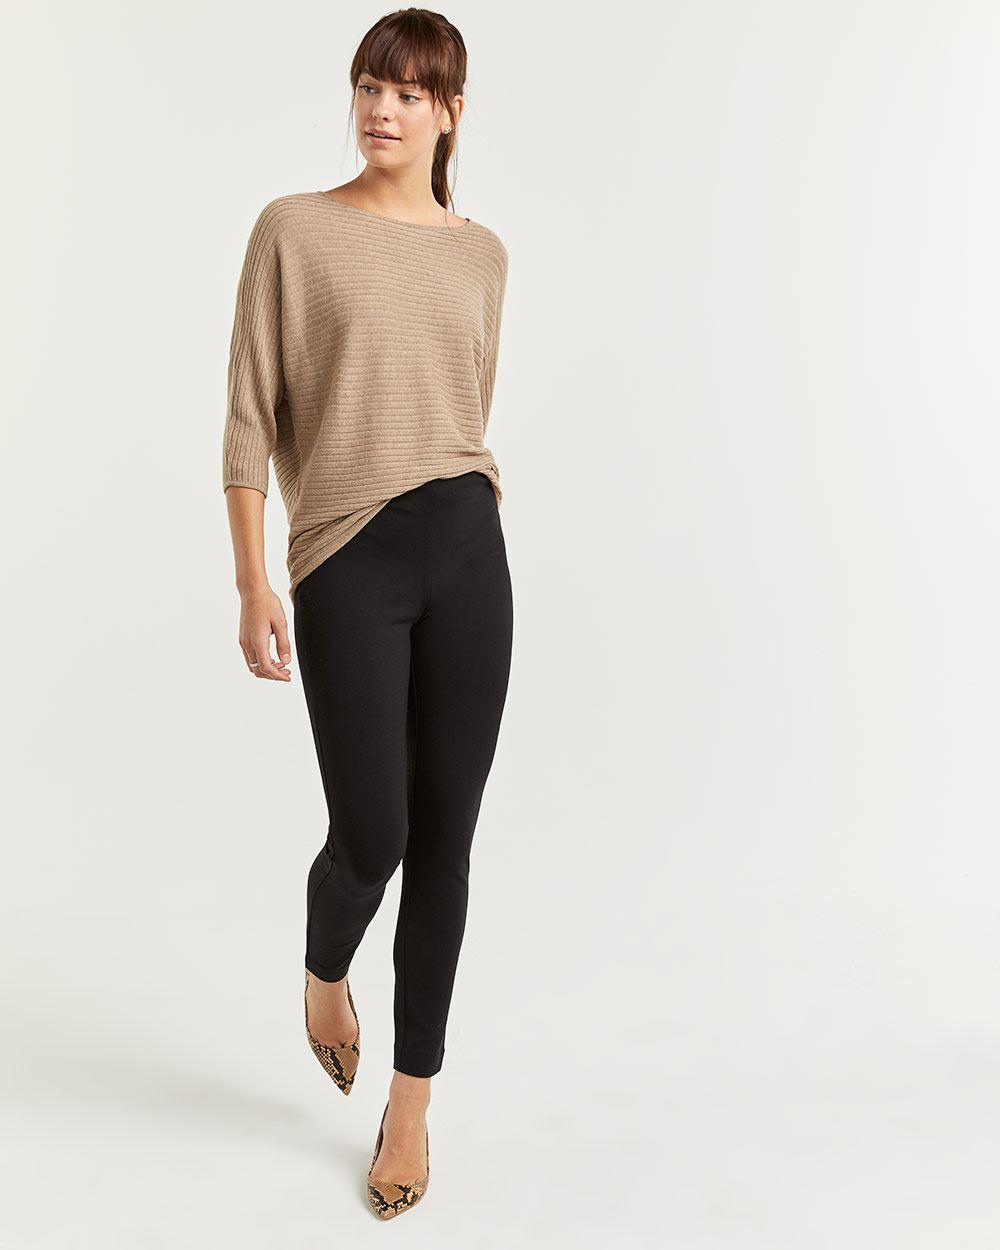 The Modern Stretch Black Leggings - Petite